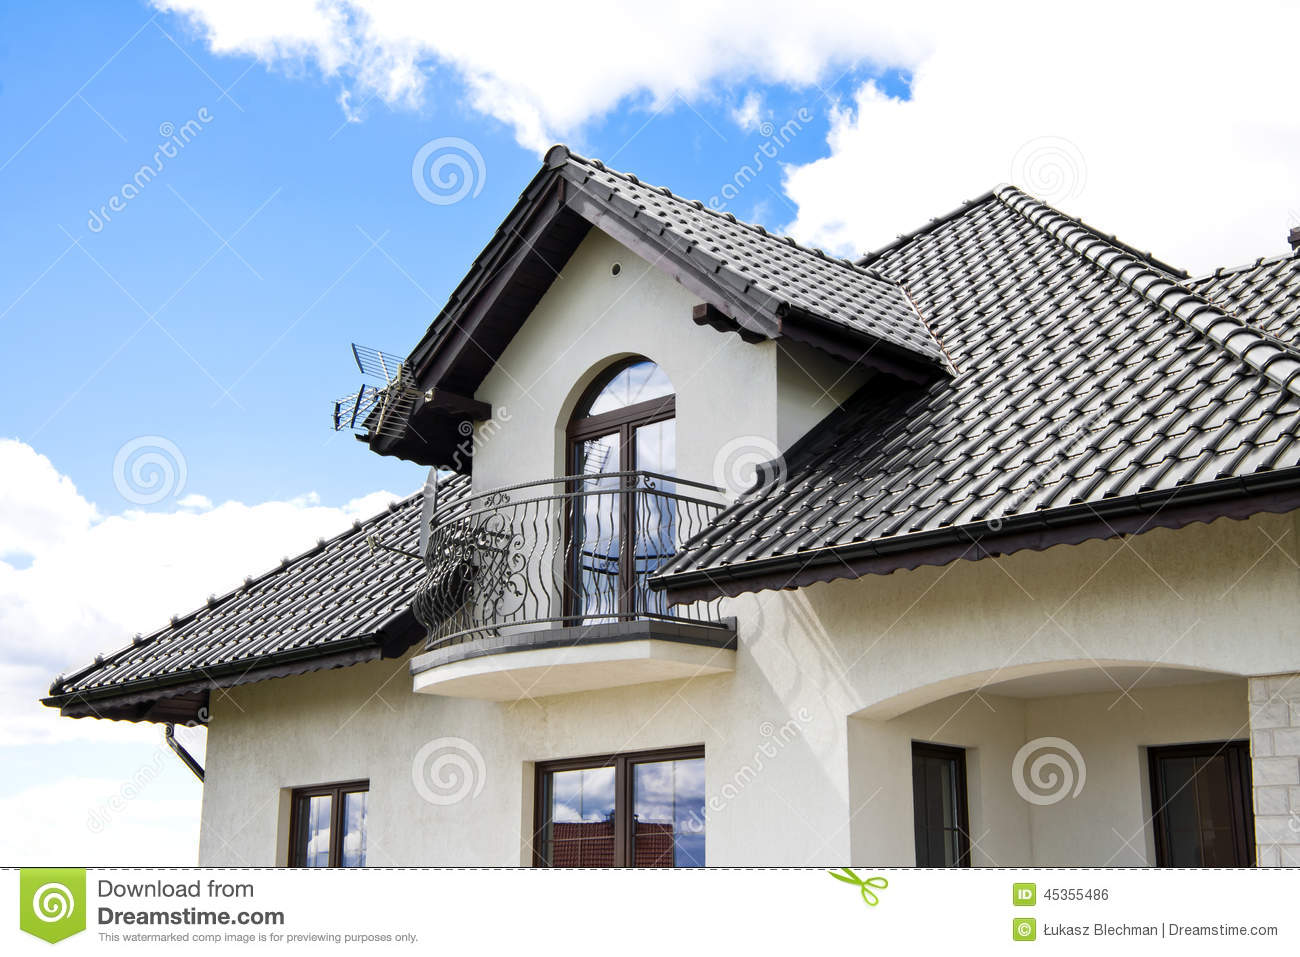 House with a Modern Roof